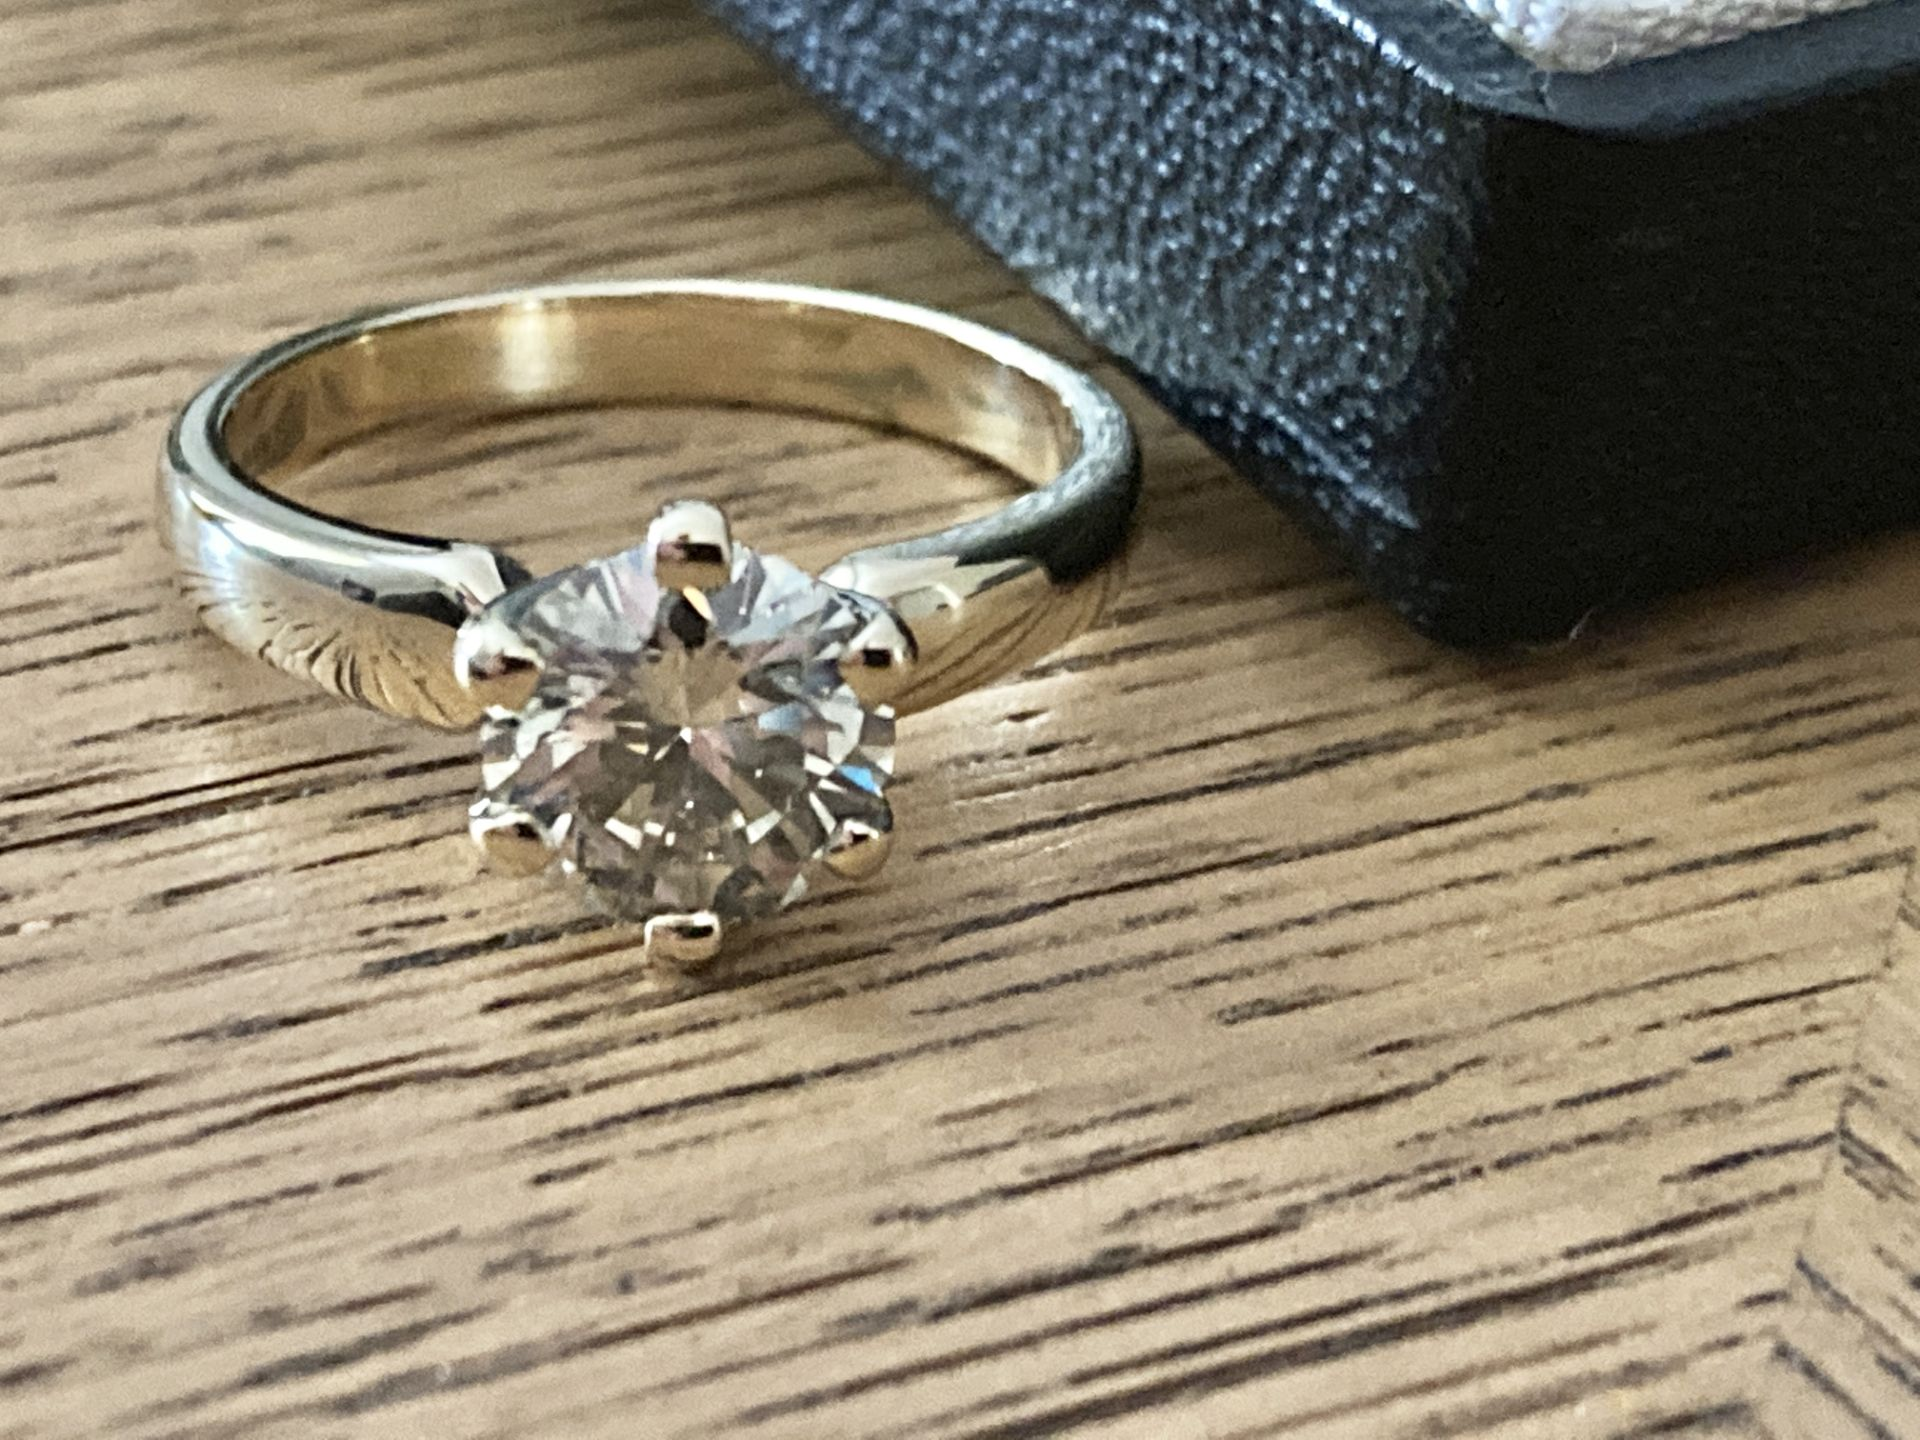 1.54CT DIAMOND SOLITAIRE RING Y. GOLD (ROUND BRILLIANT) - 2012 VALUATION £6,200 INCLUDED - Image 13 of 14